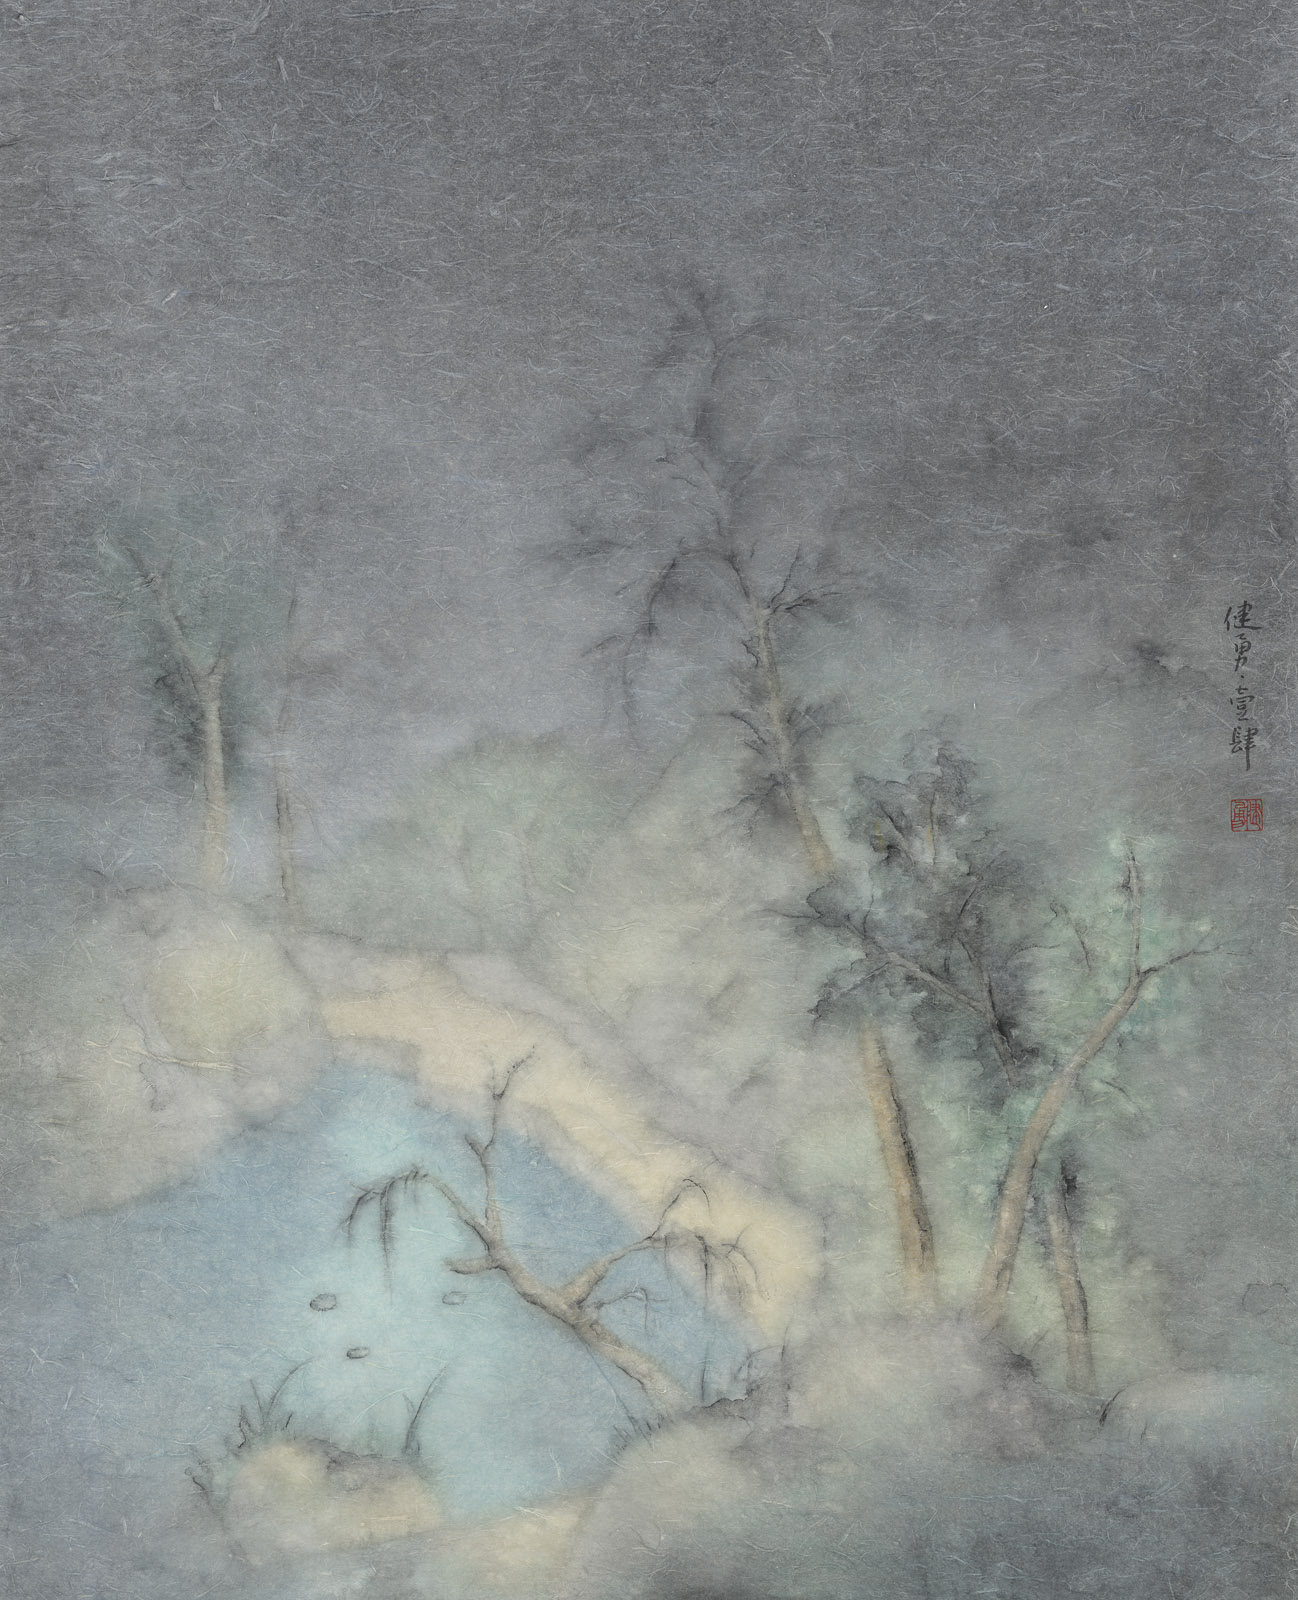 Zeng Jianyong 曾健勇, Lost No.5 迷路之五, 2013, Ink and color on paper 纸本设色, 95 x 128 cm